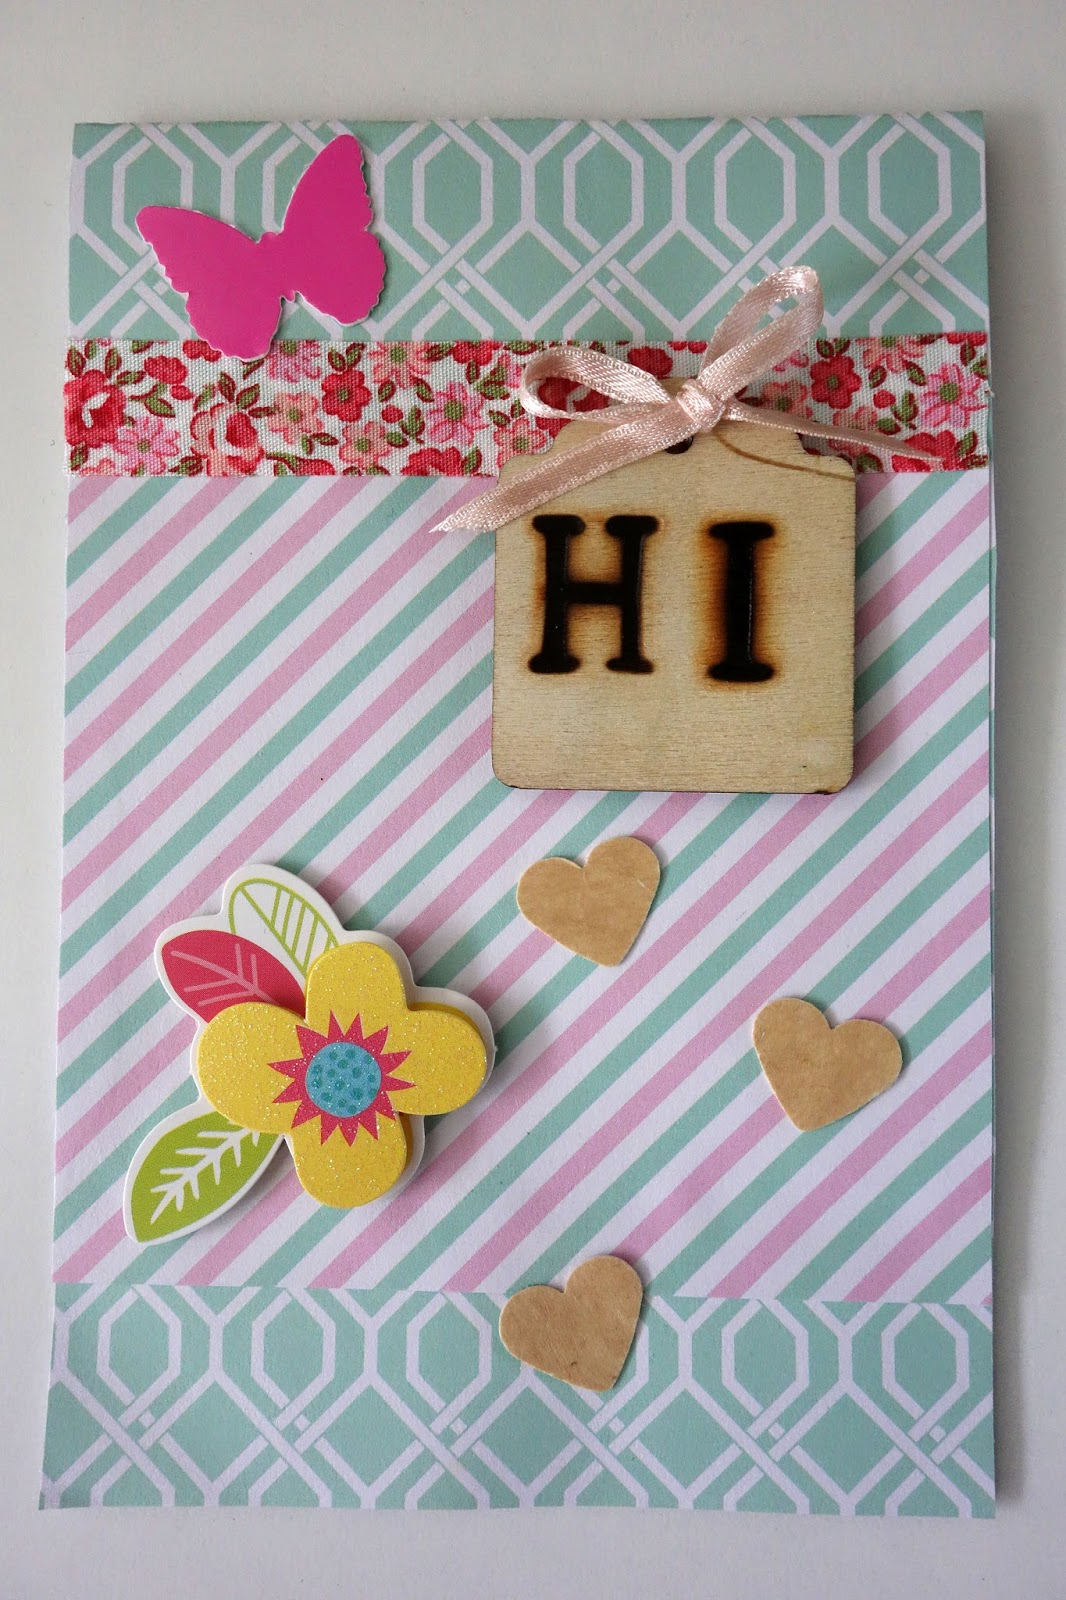 Blah to tada handmade greeting cards i call this the hi card the hi is made with wood burning tools and a beechwood tag the card is an assemblage of scrapbook paper stickers m4hsunfo